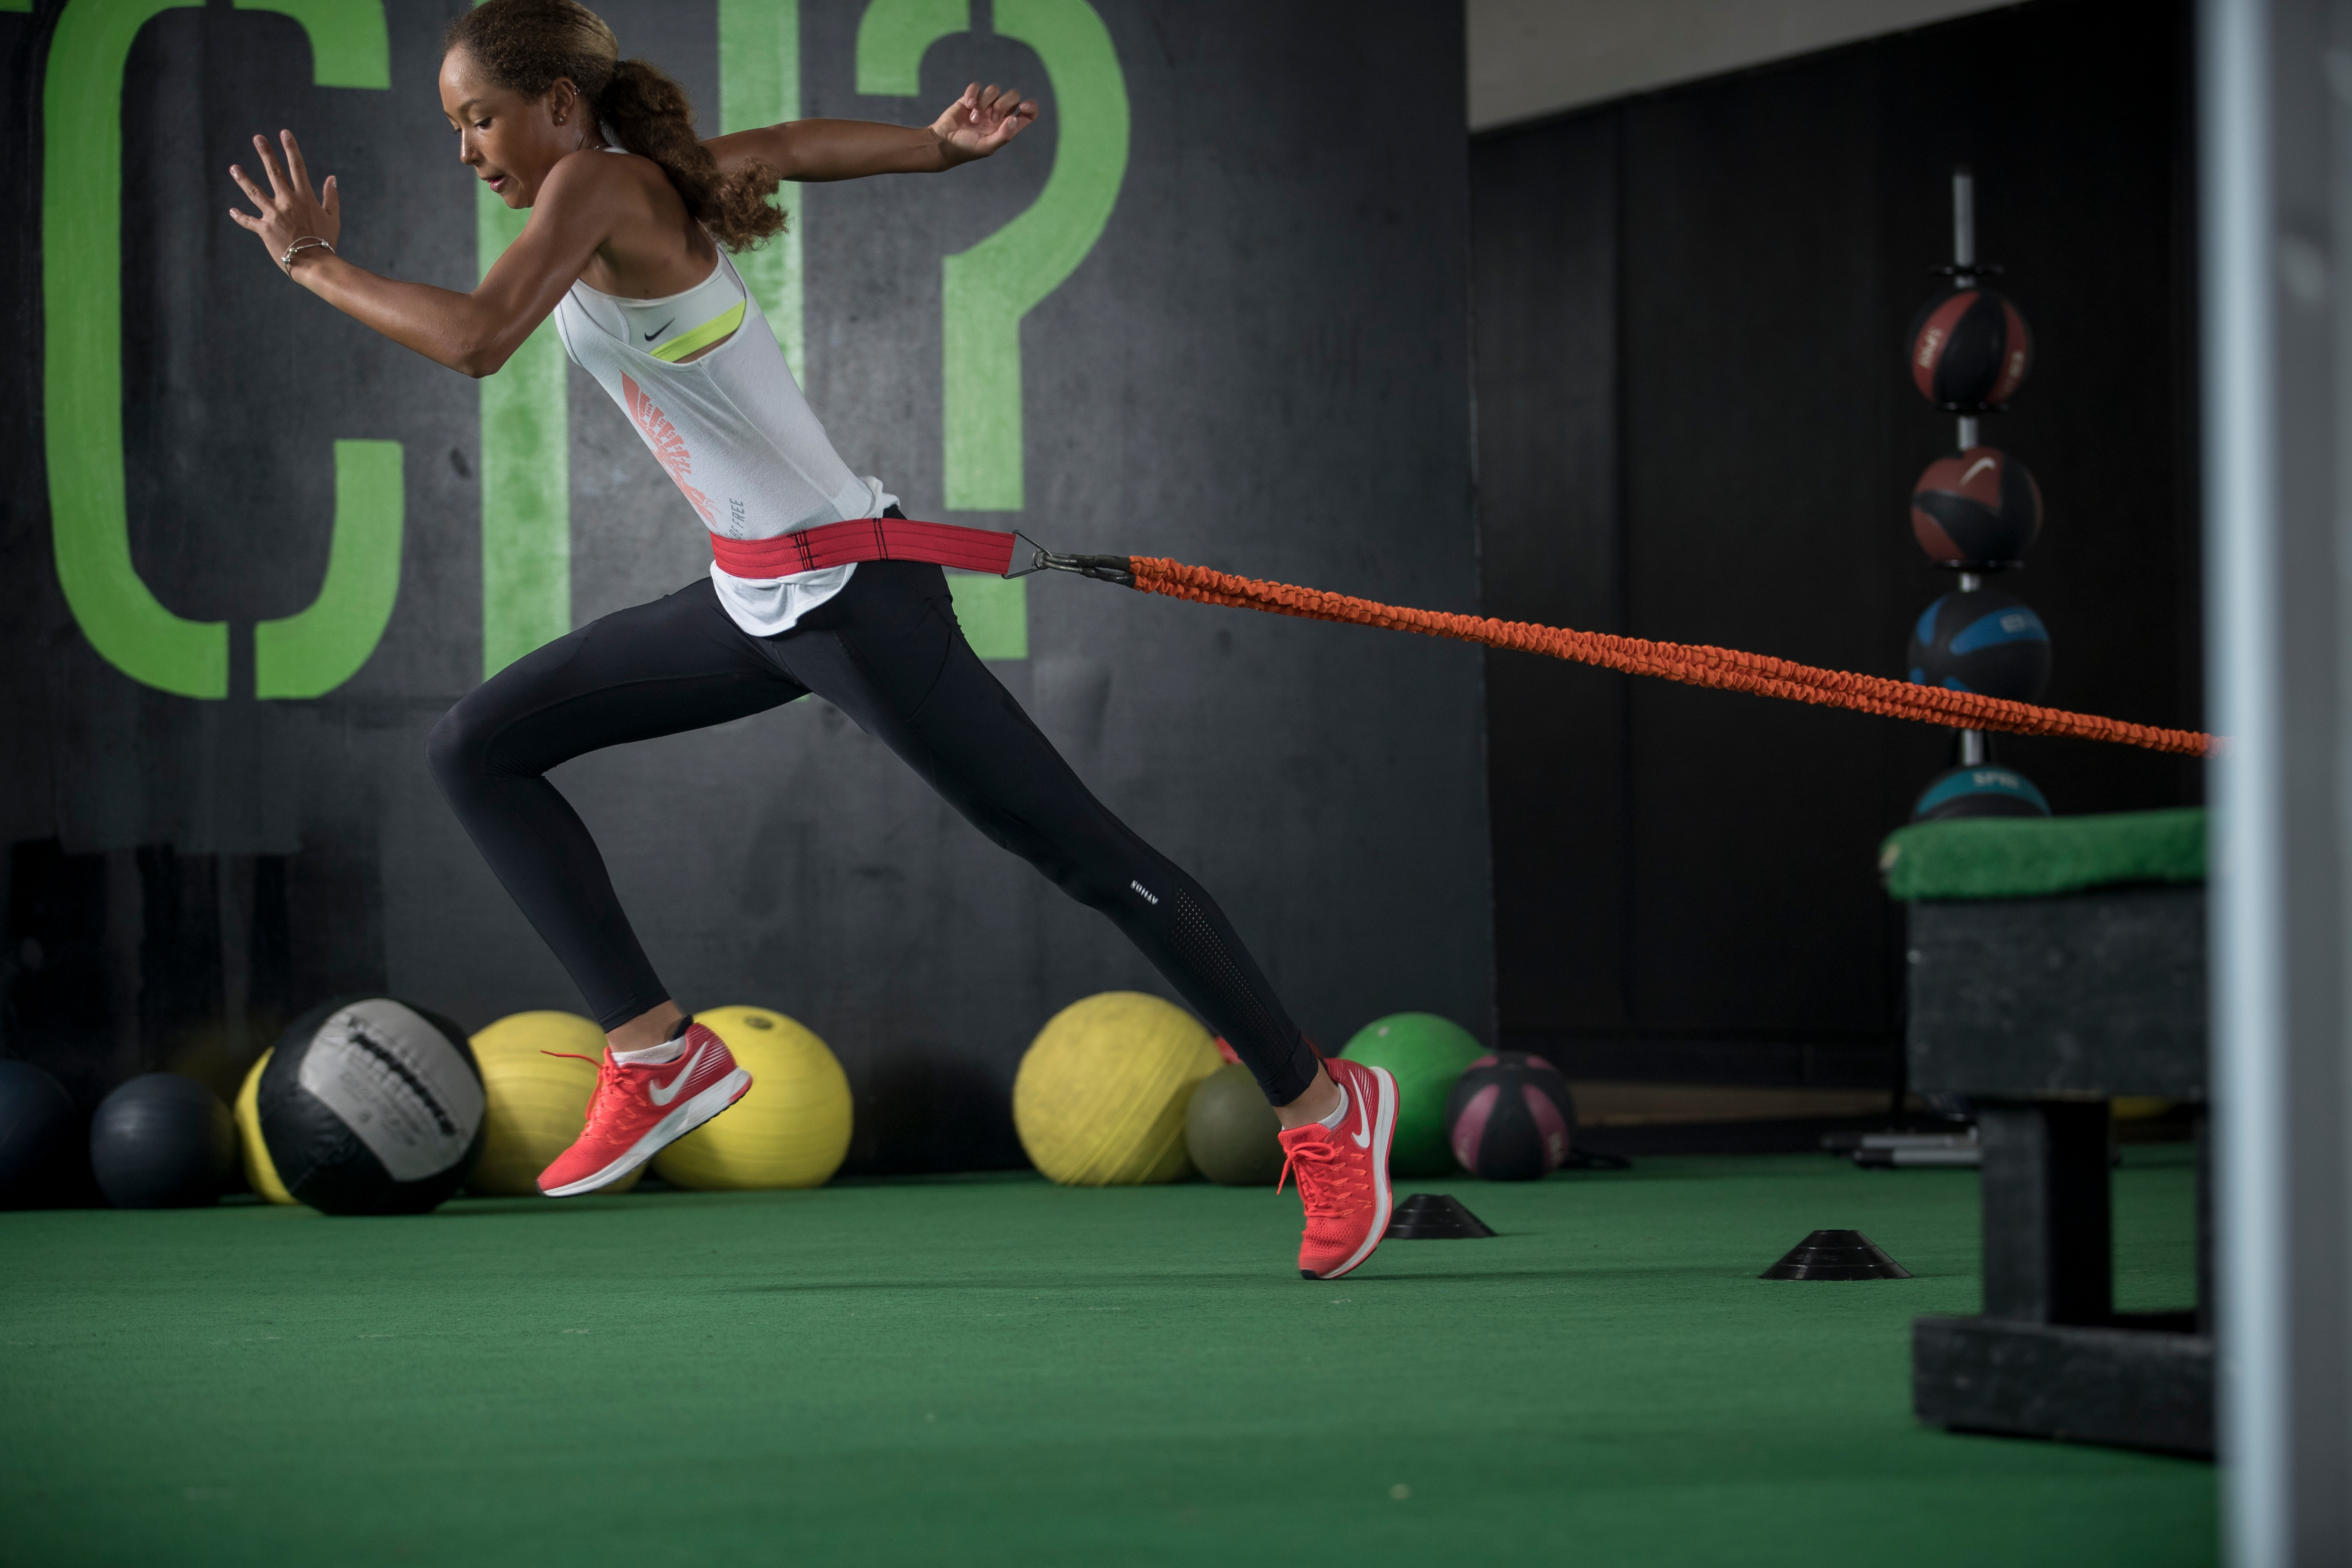 explosive power, posterior chain, increase player availability, ensure athlete readiness,